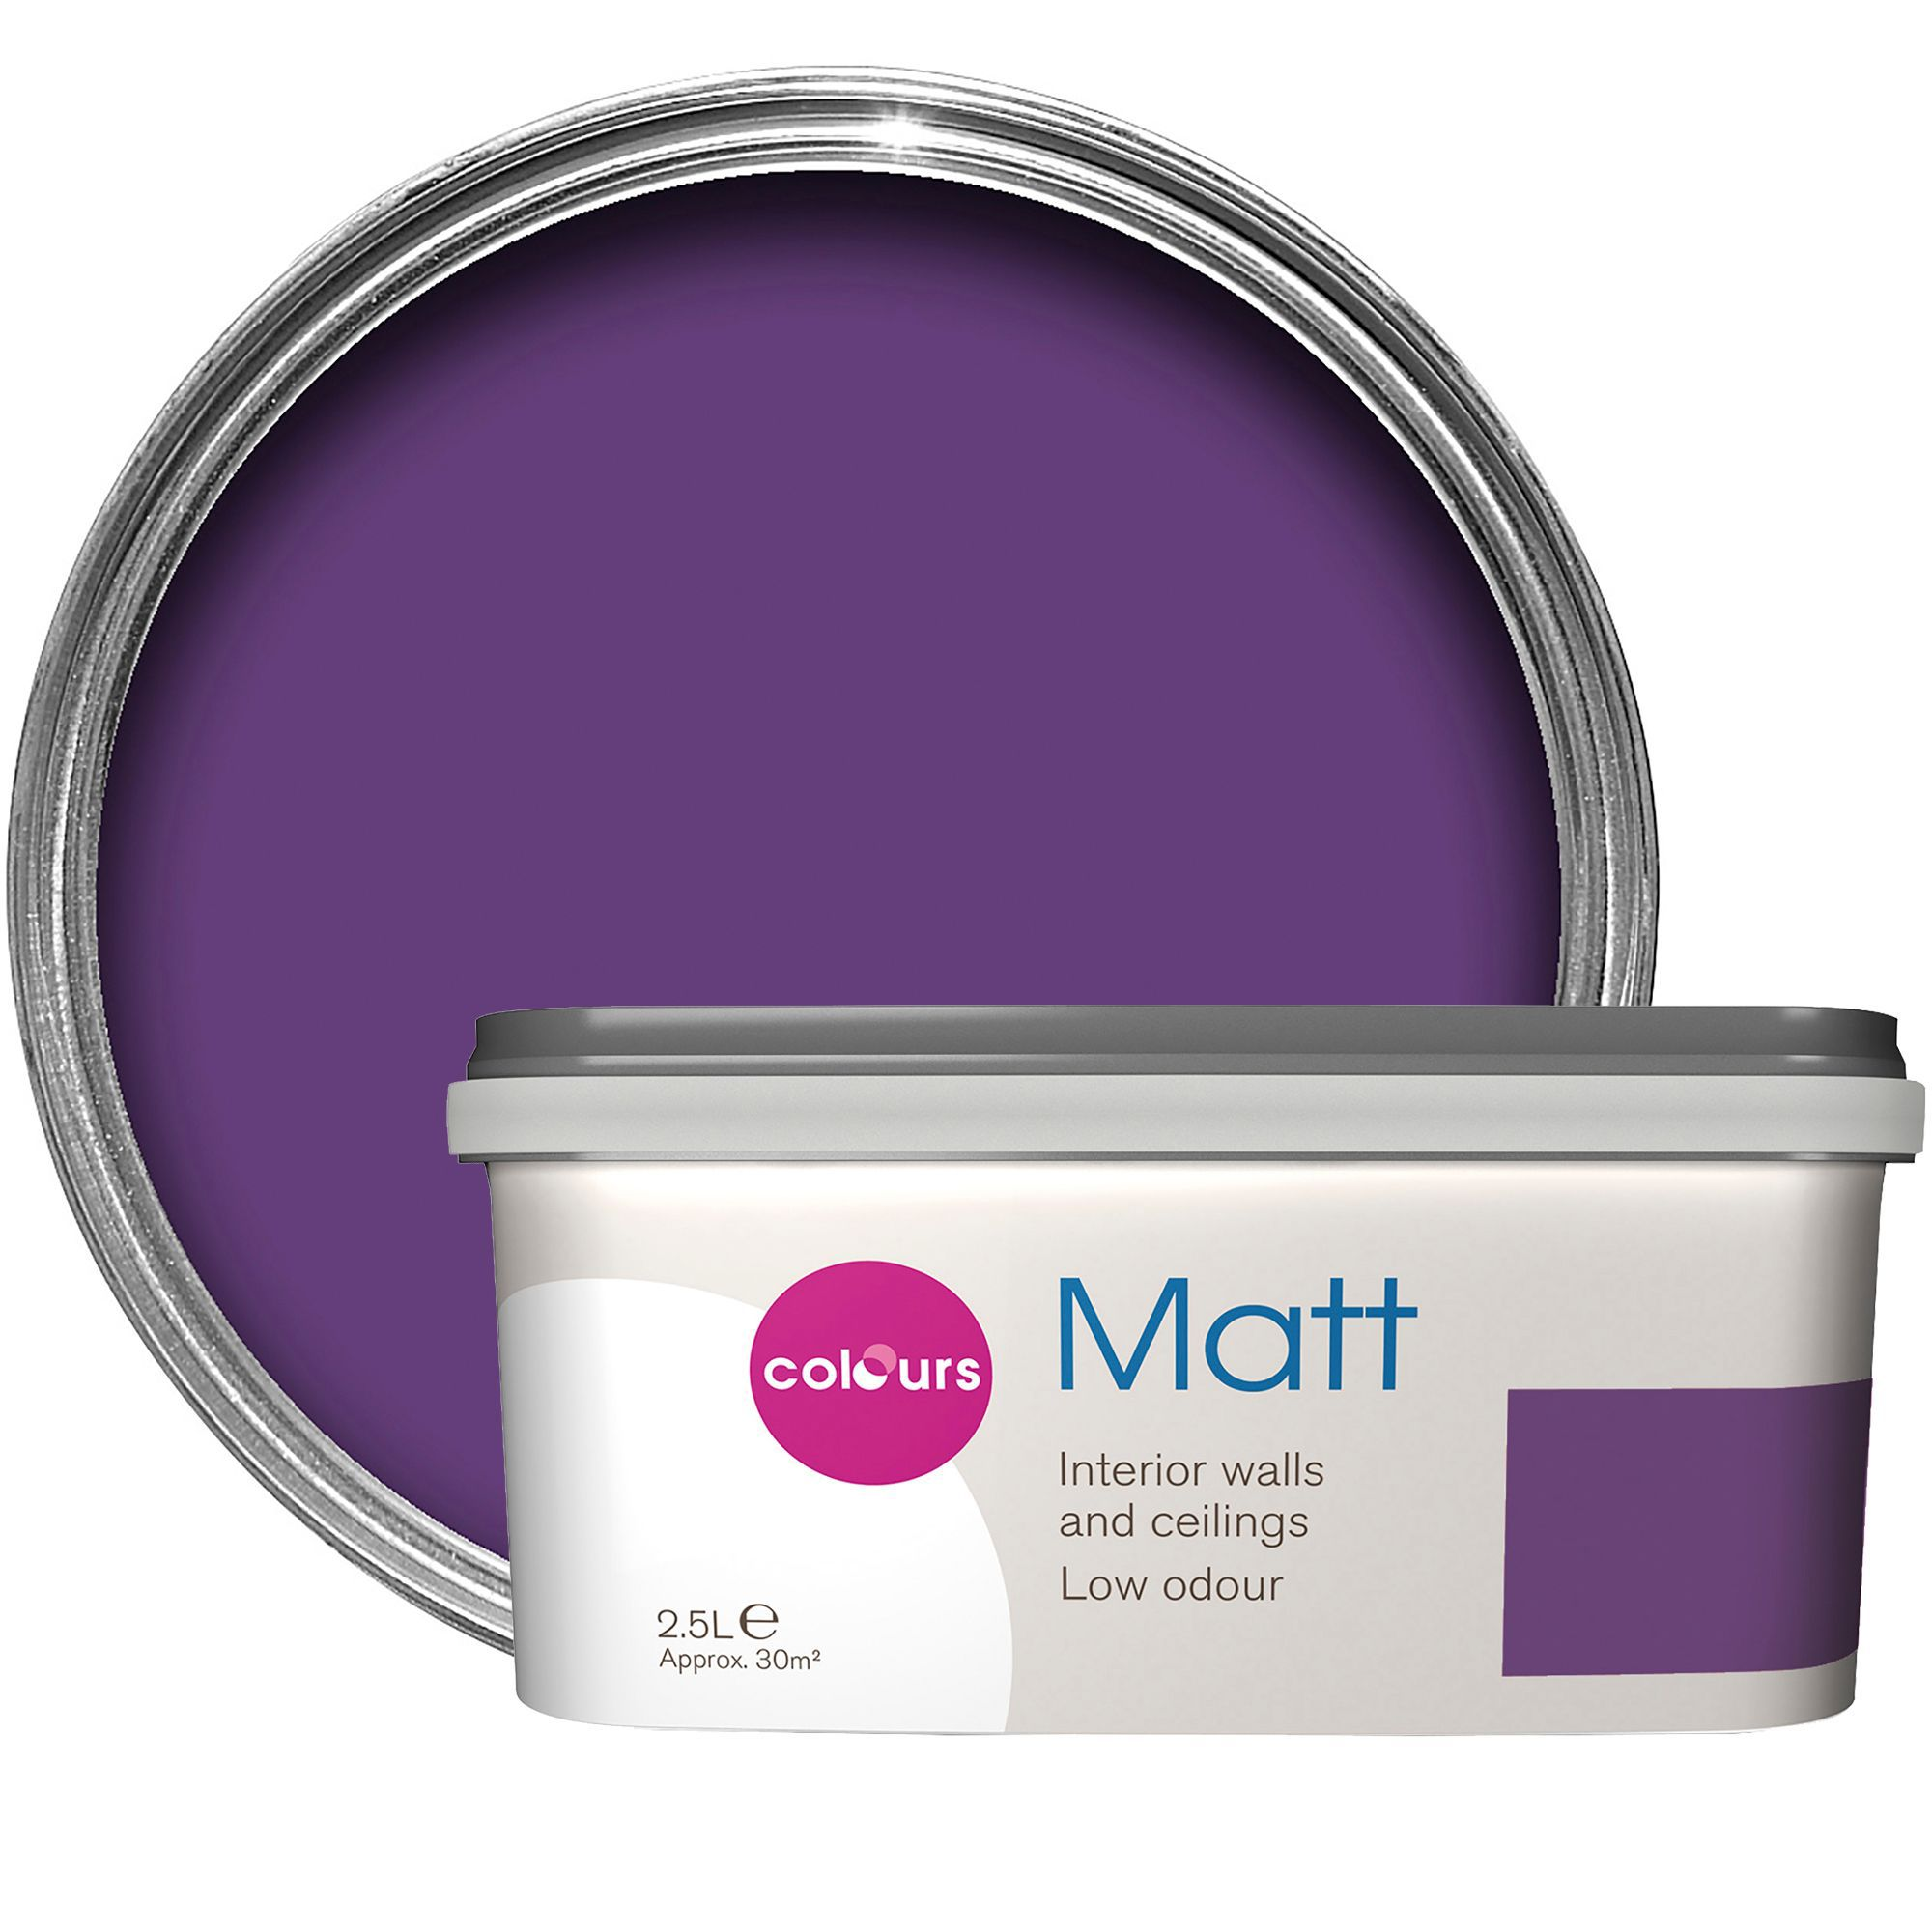 Colours Violet imperial Matt Emulsion paint 2 5L | Departments | DIY at B&Q